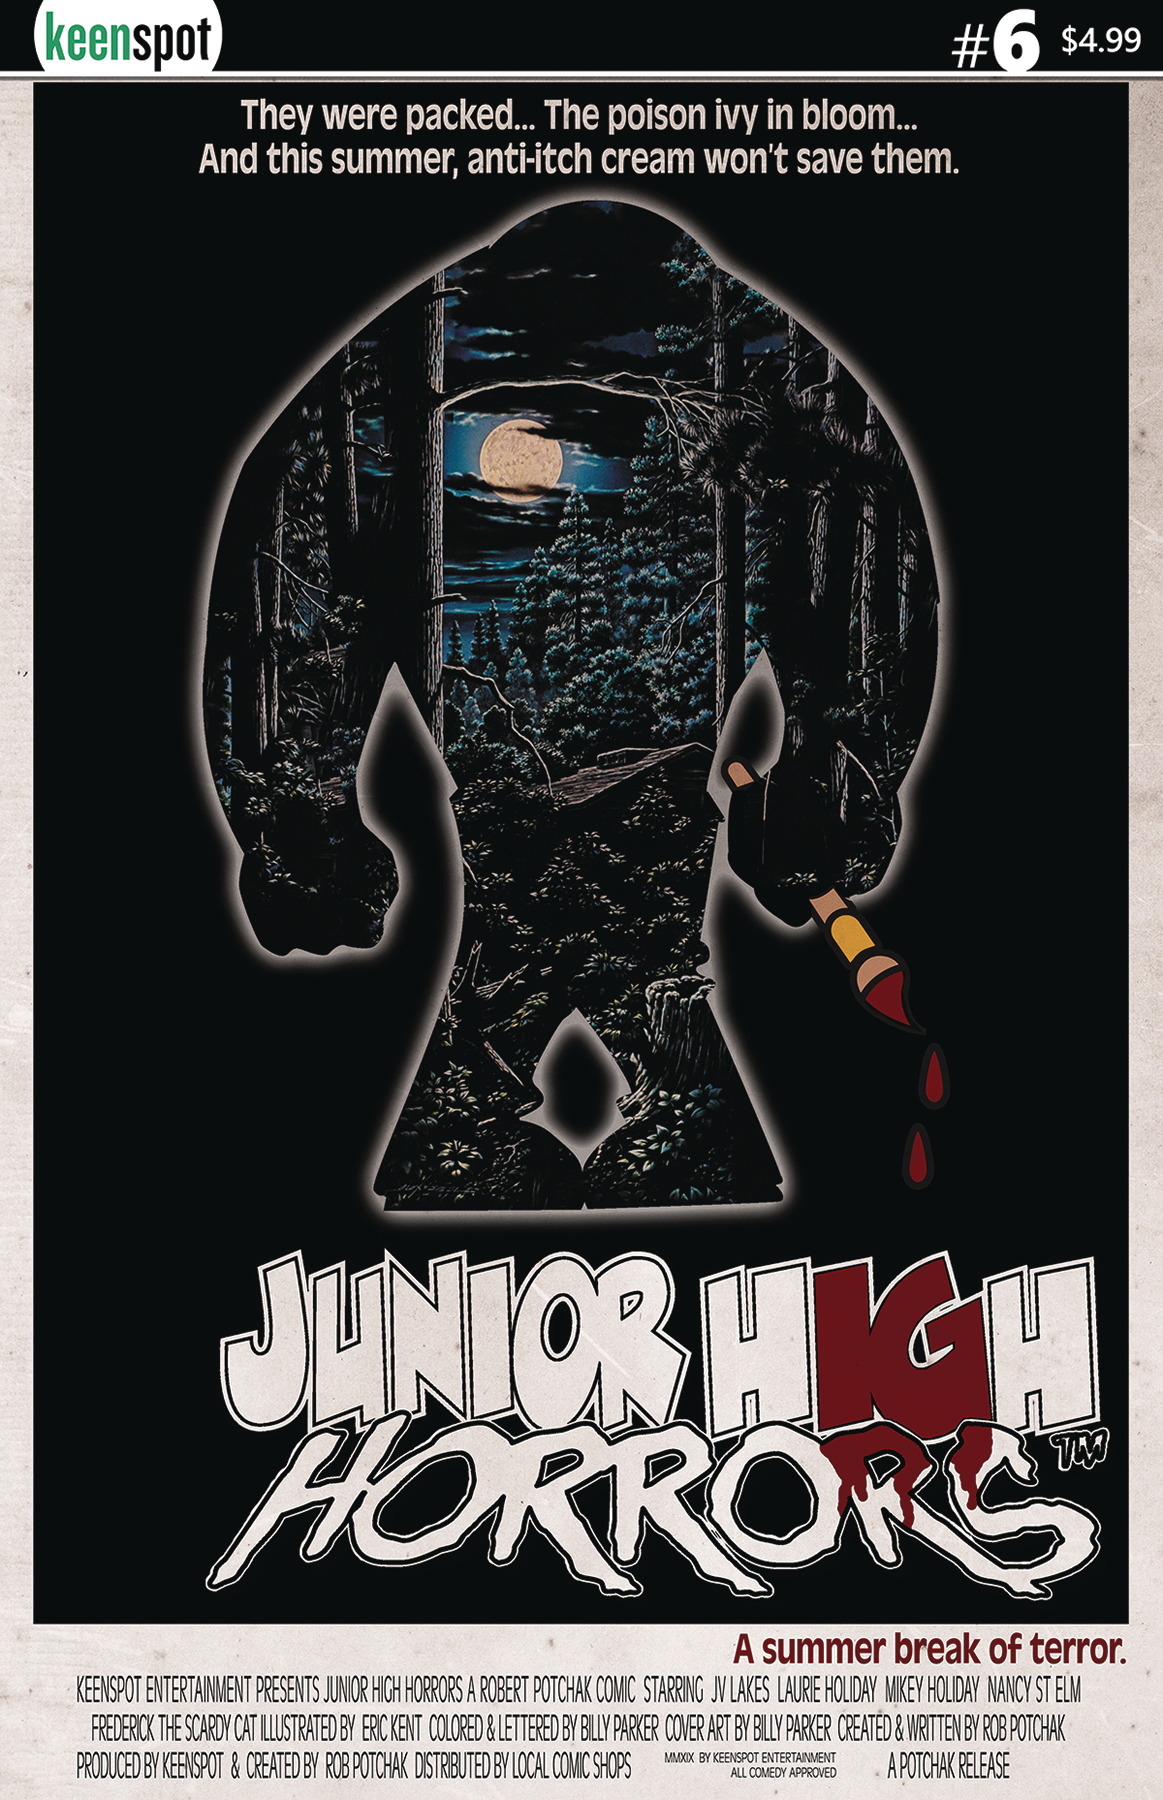 JUNIOR HIGH HORRORS #6 CVR B FRIDAY THE 13TH PARODY